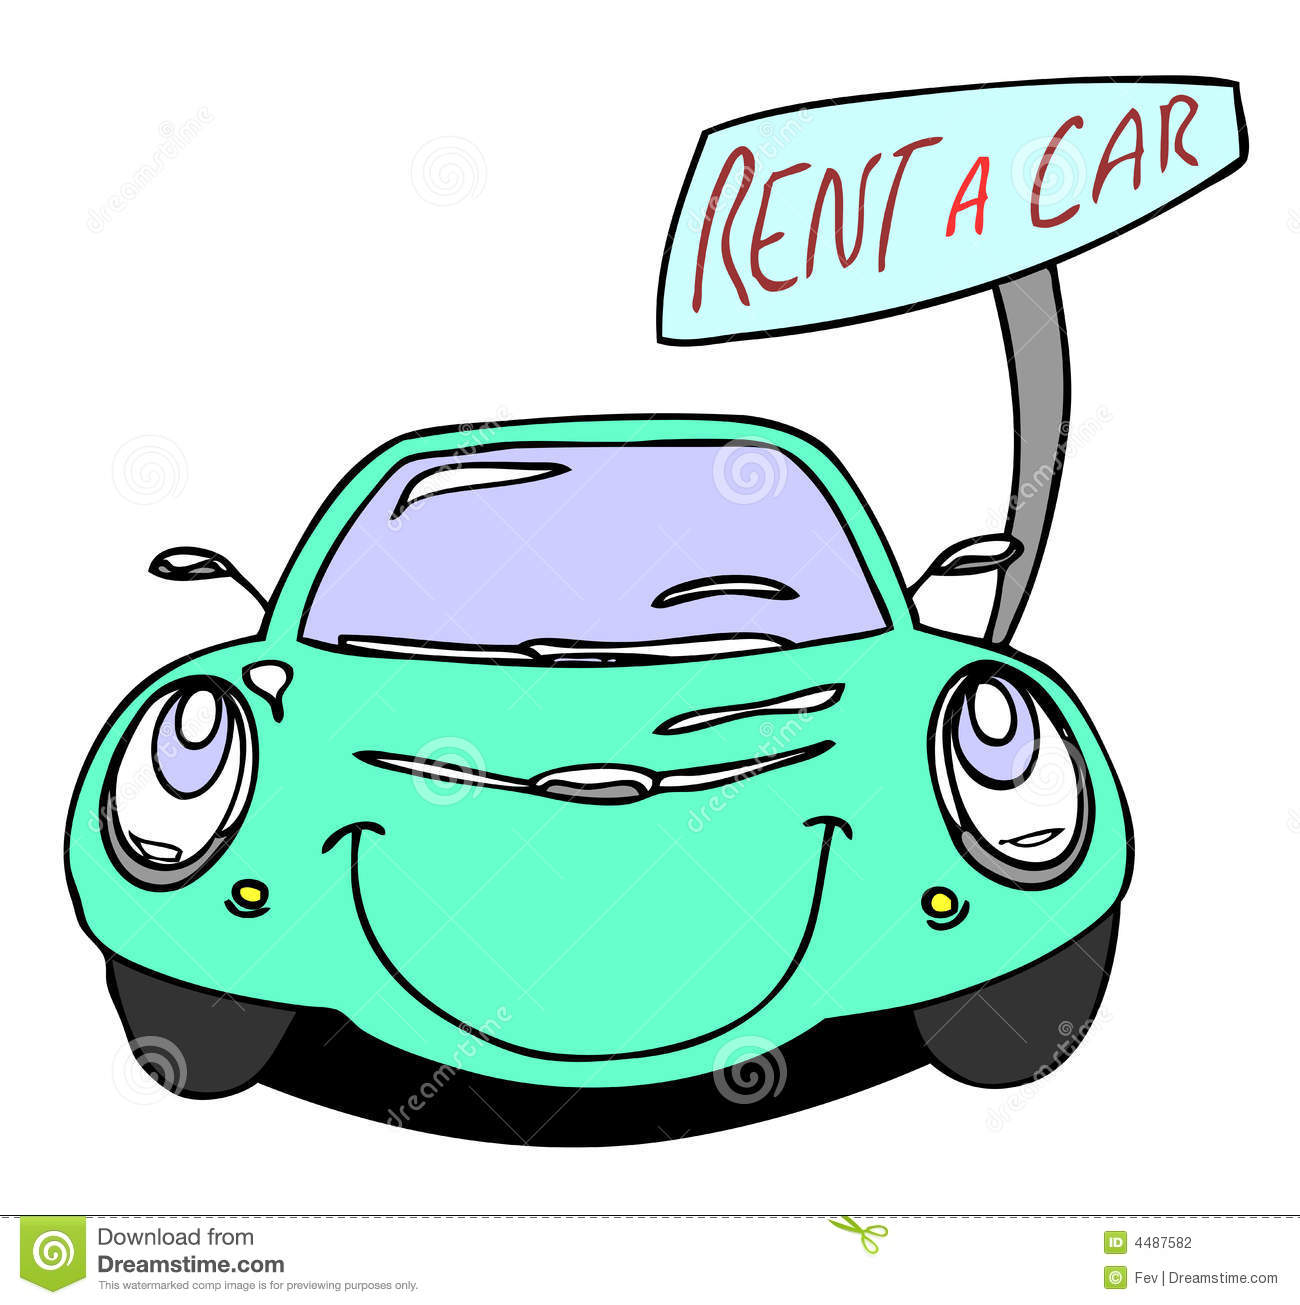 Rental Cars: Rent A Car Stock Vector. Illustration Of Diesel, Exhaust